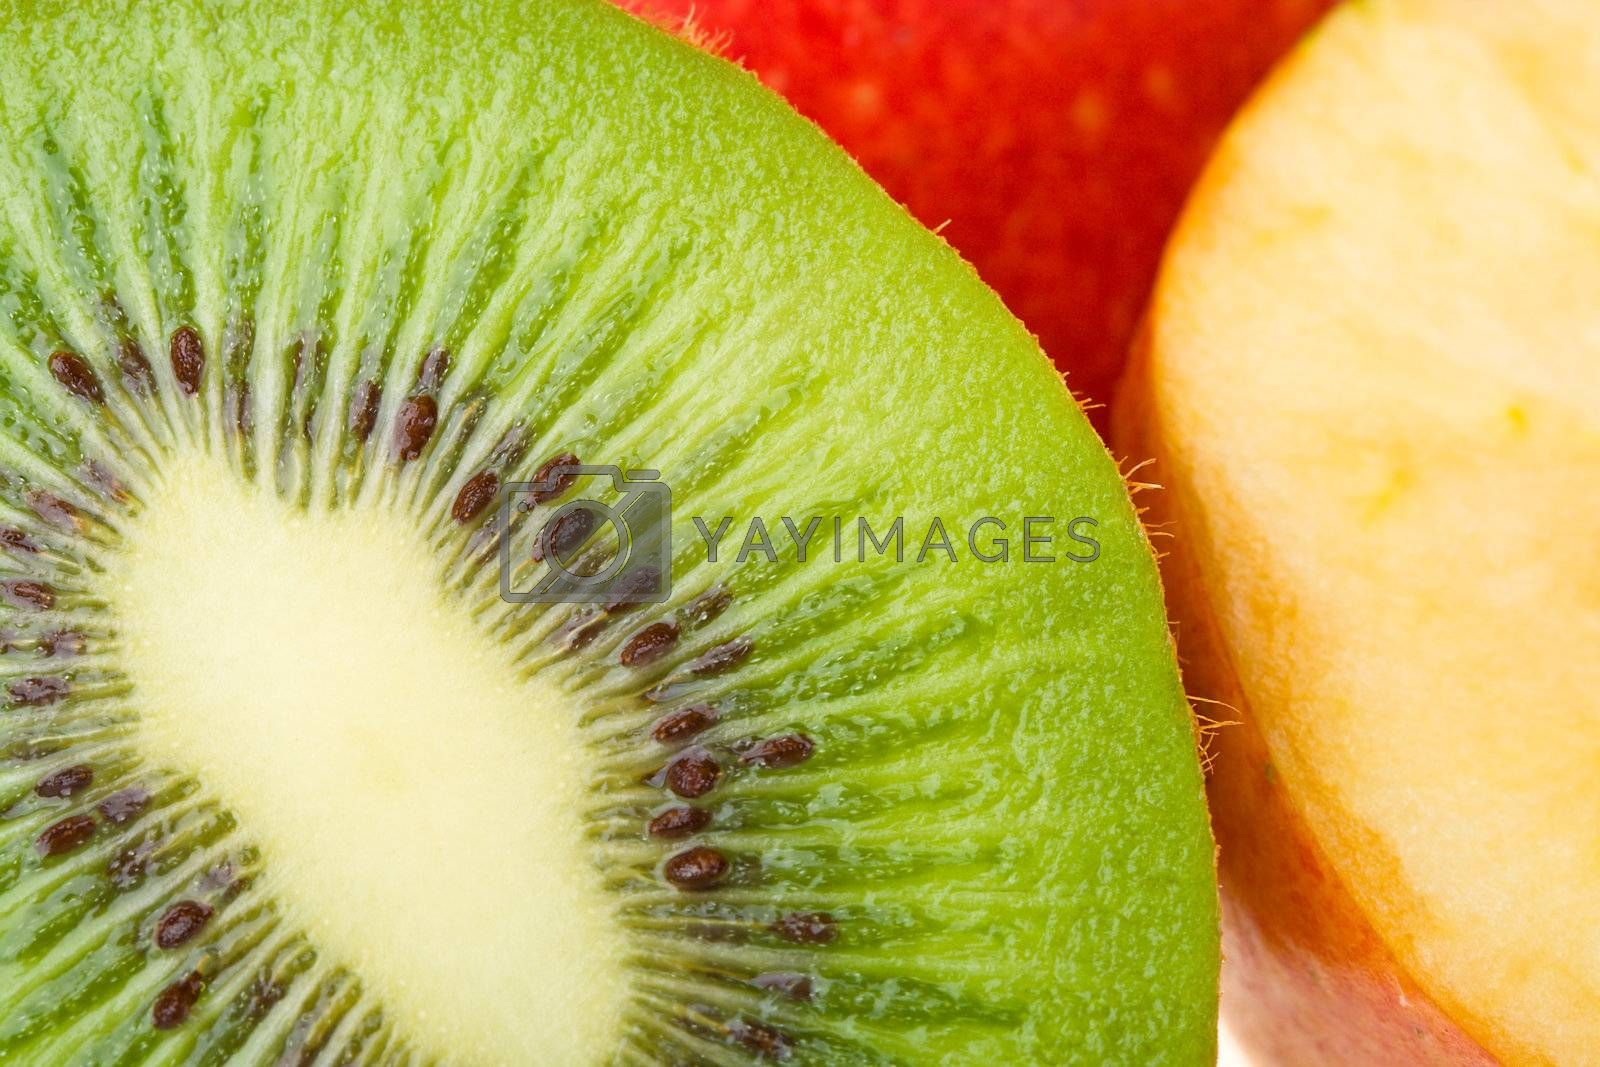 Royalty free image of close-up kiwi and apples by Alekcey